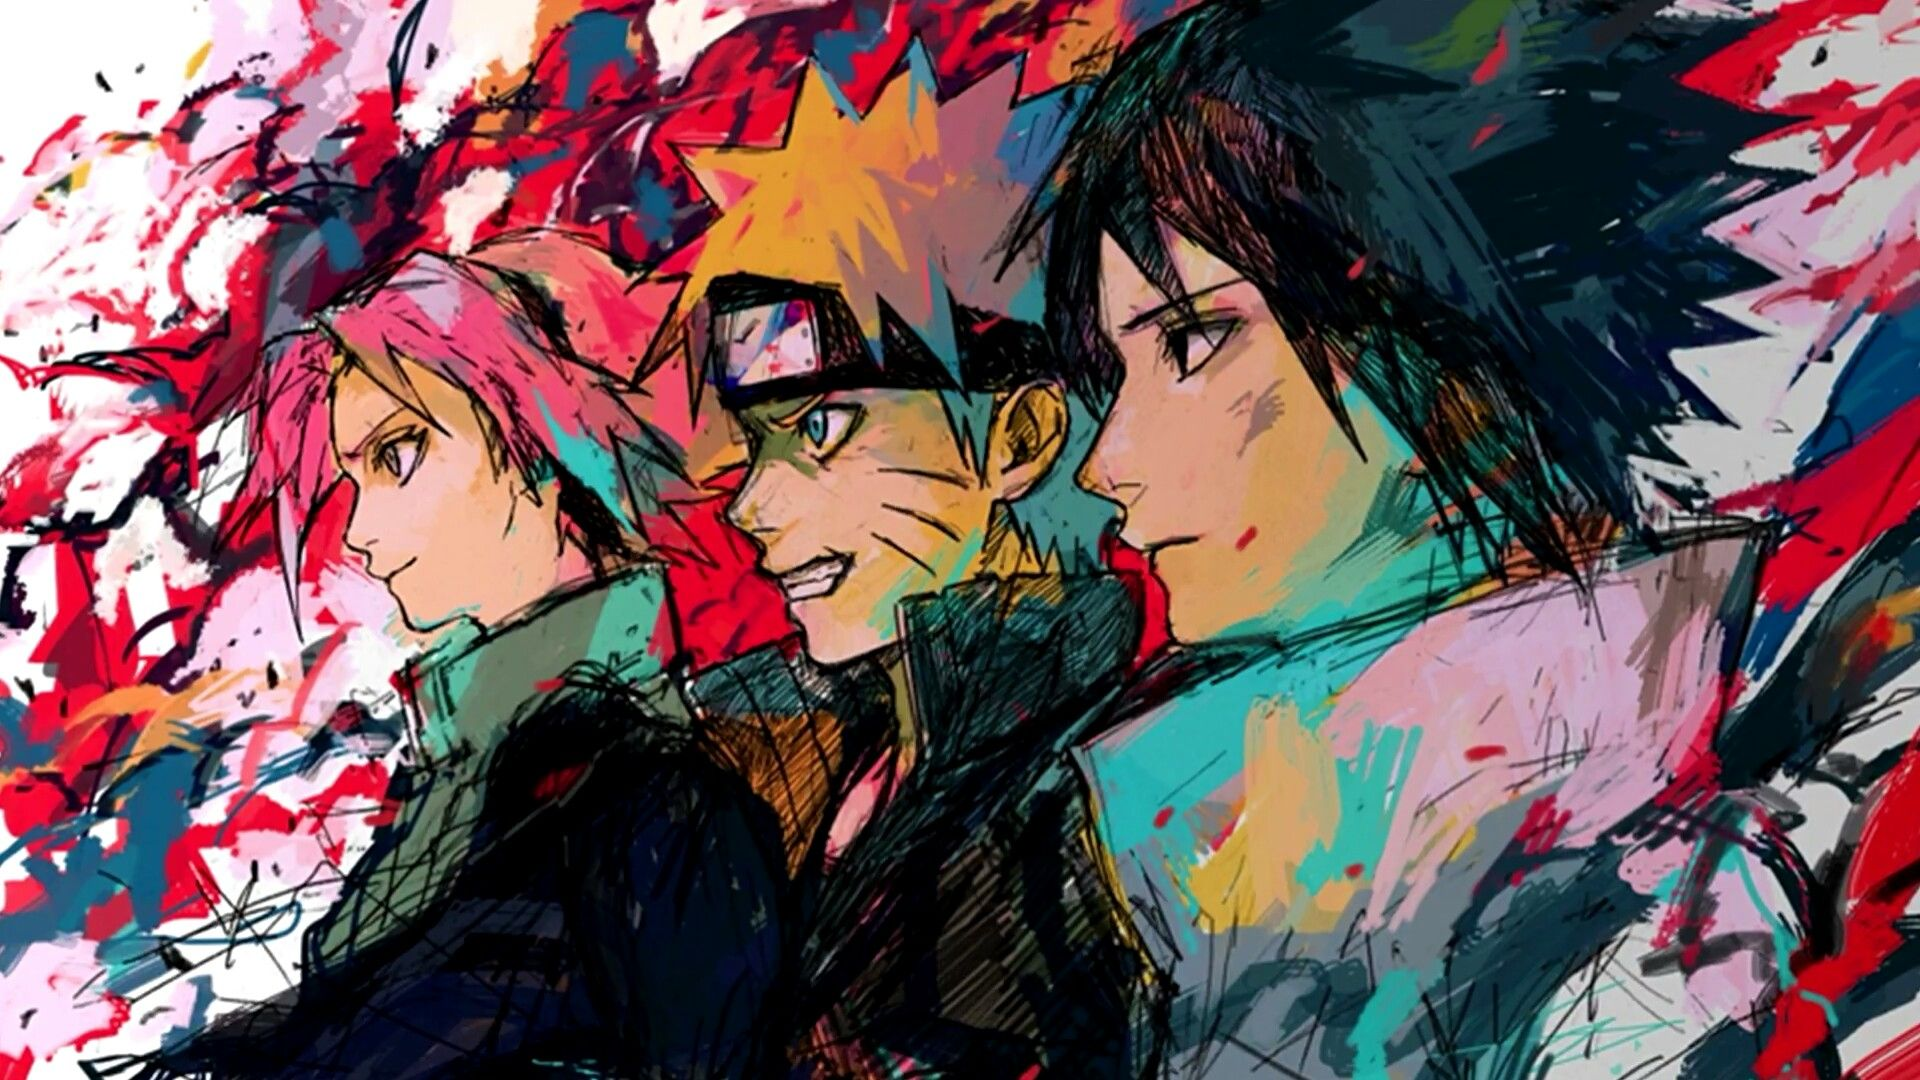 Naruto Wallpaper Wallpaper Studio 10 Tens of thousands